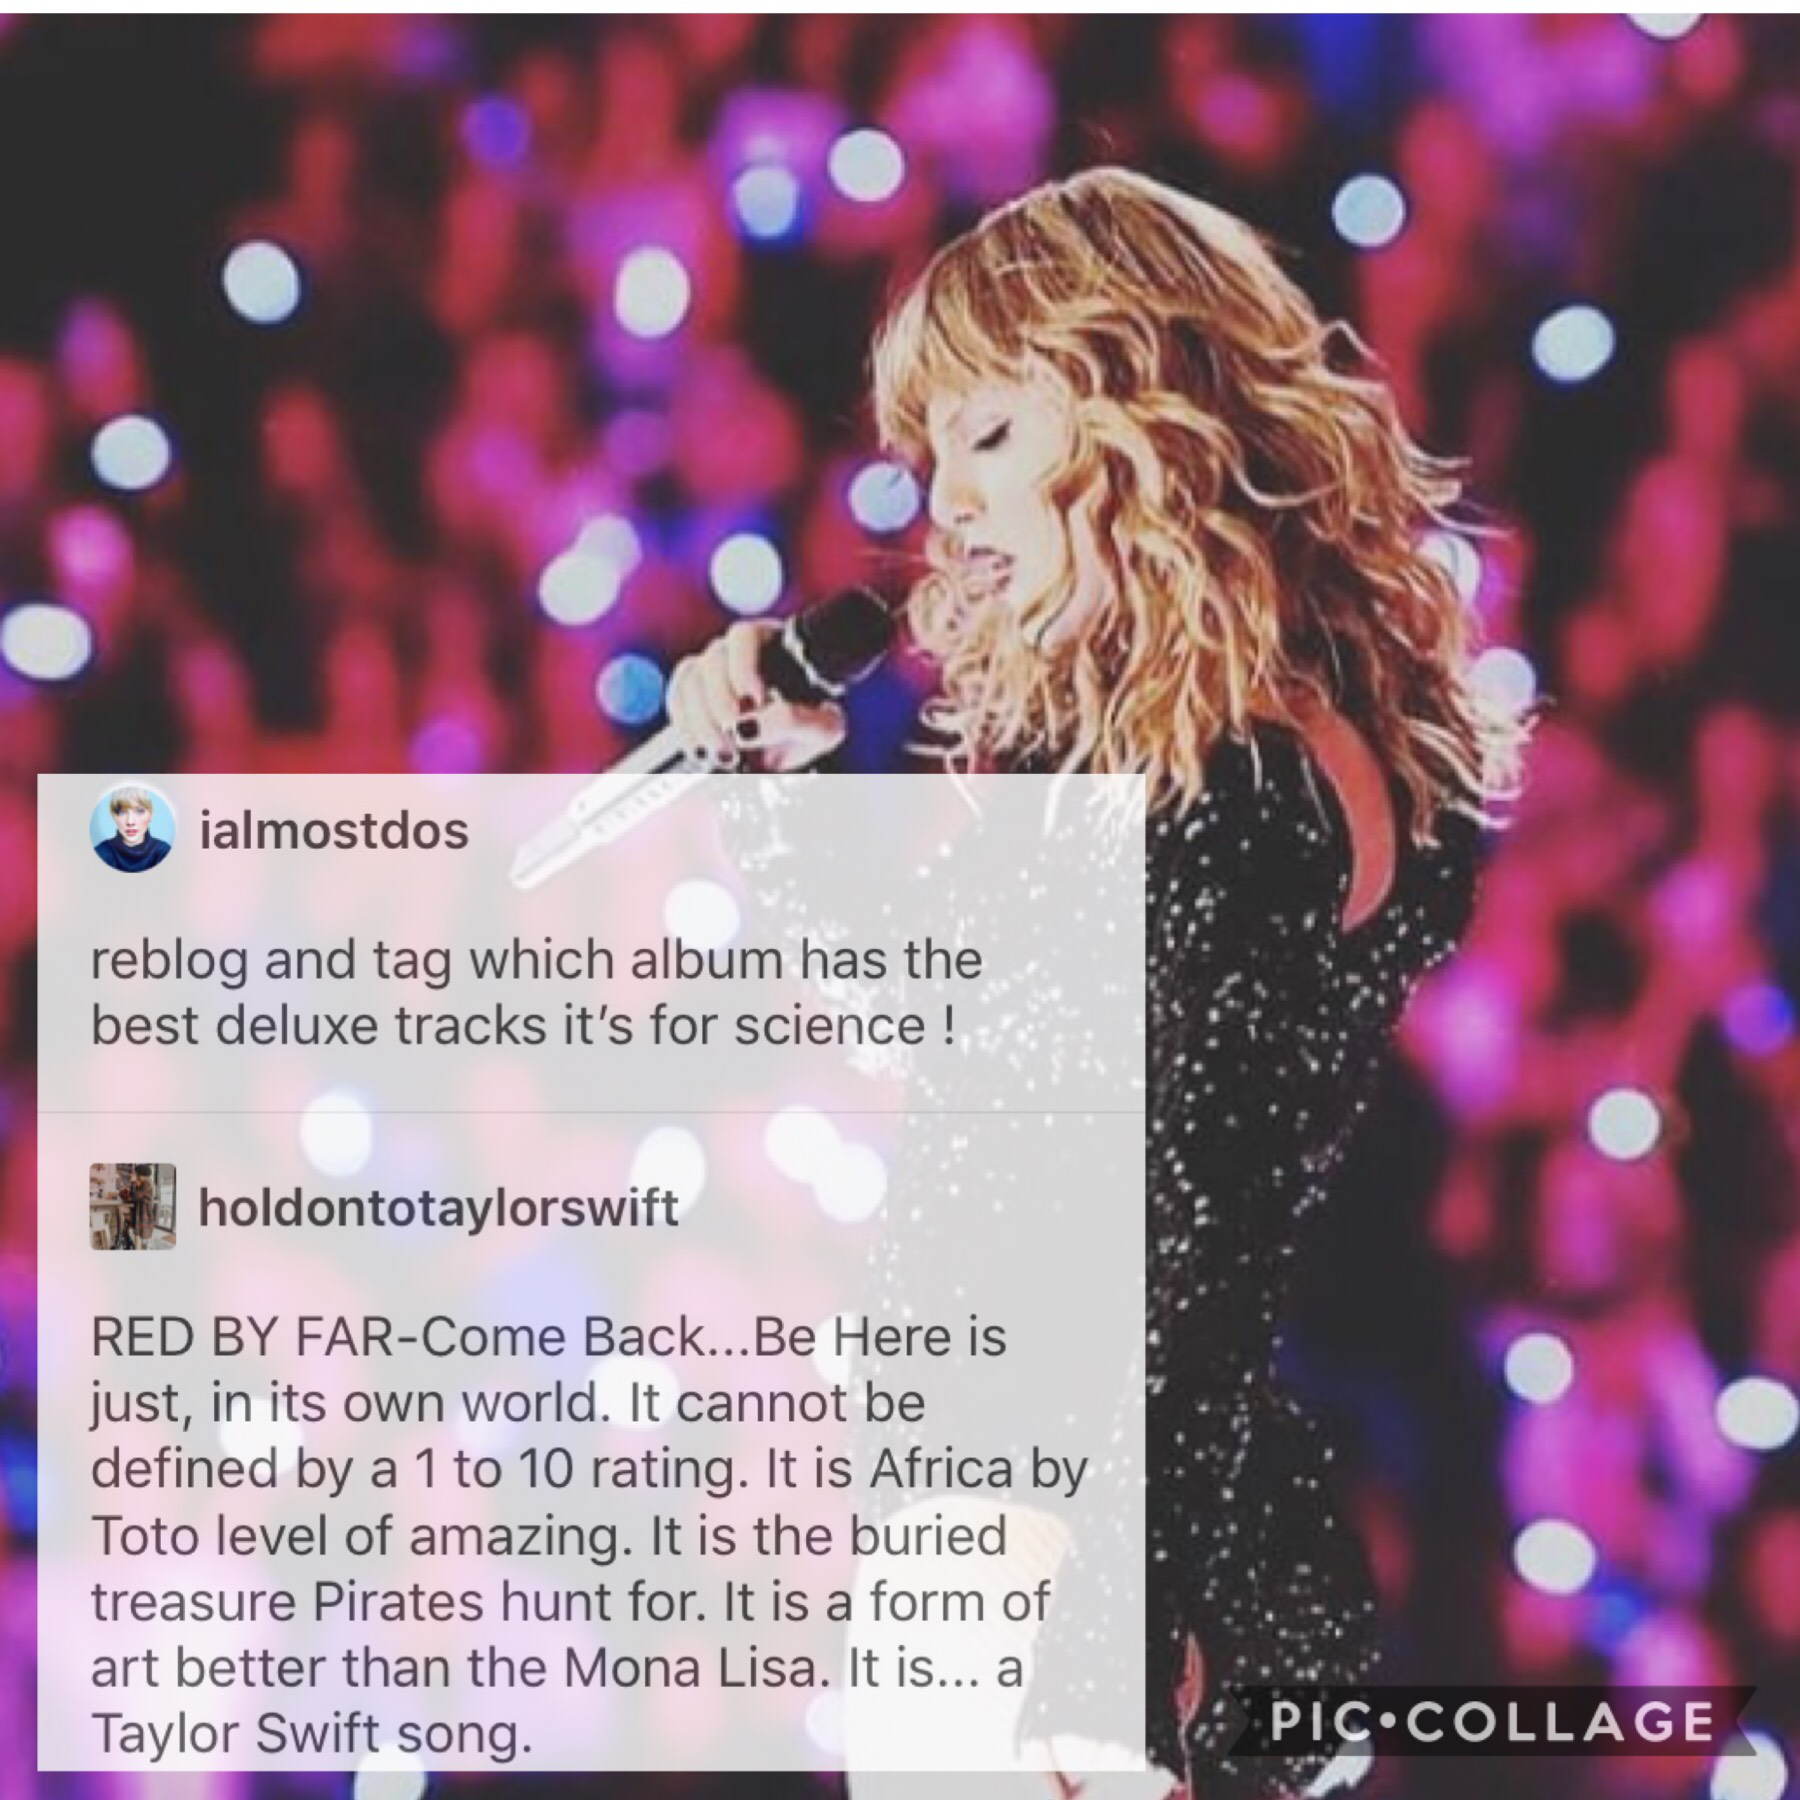 ❤️TAP❤️ The comment is very well put. Q: Which album do you think has the best bonus tracks? A: Either Red or Fearless